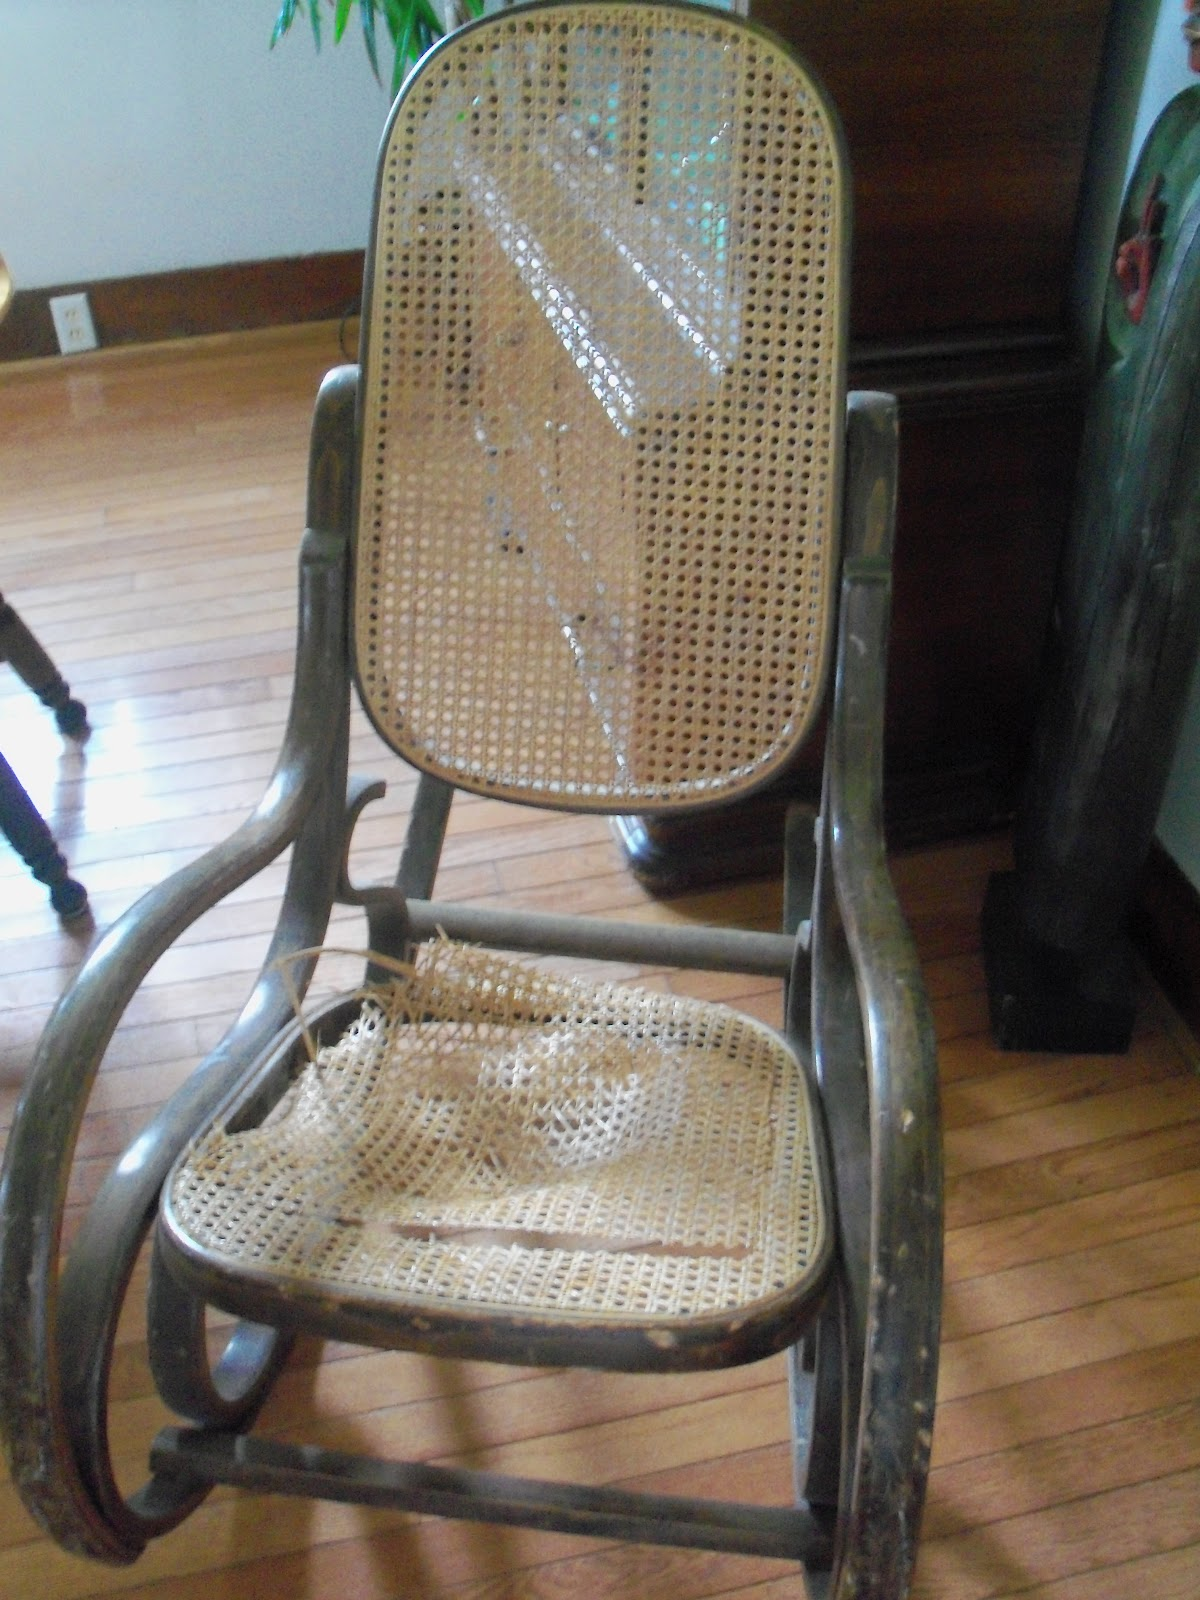 repairing cane seat chairs best office chair mat for hardwood floors shelly 39s vintage blog pressed repair of old rocking